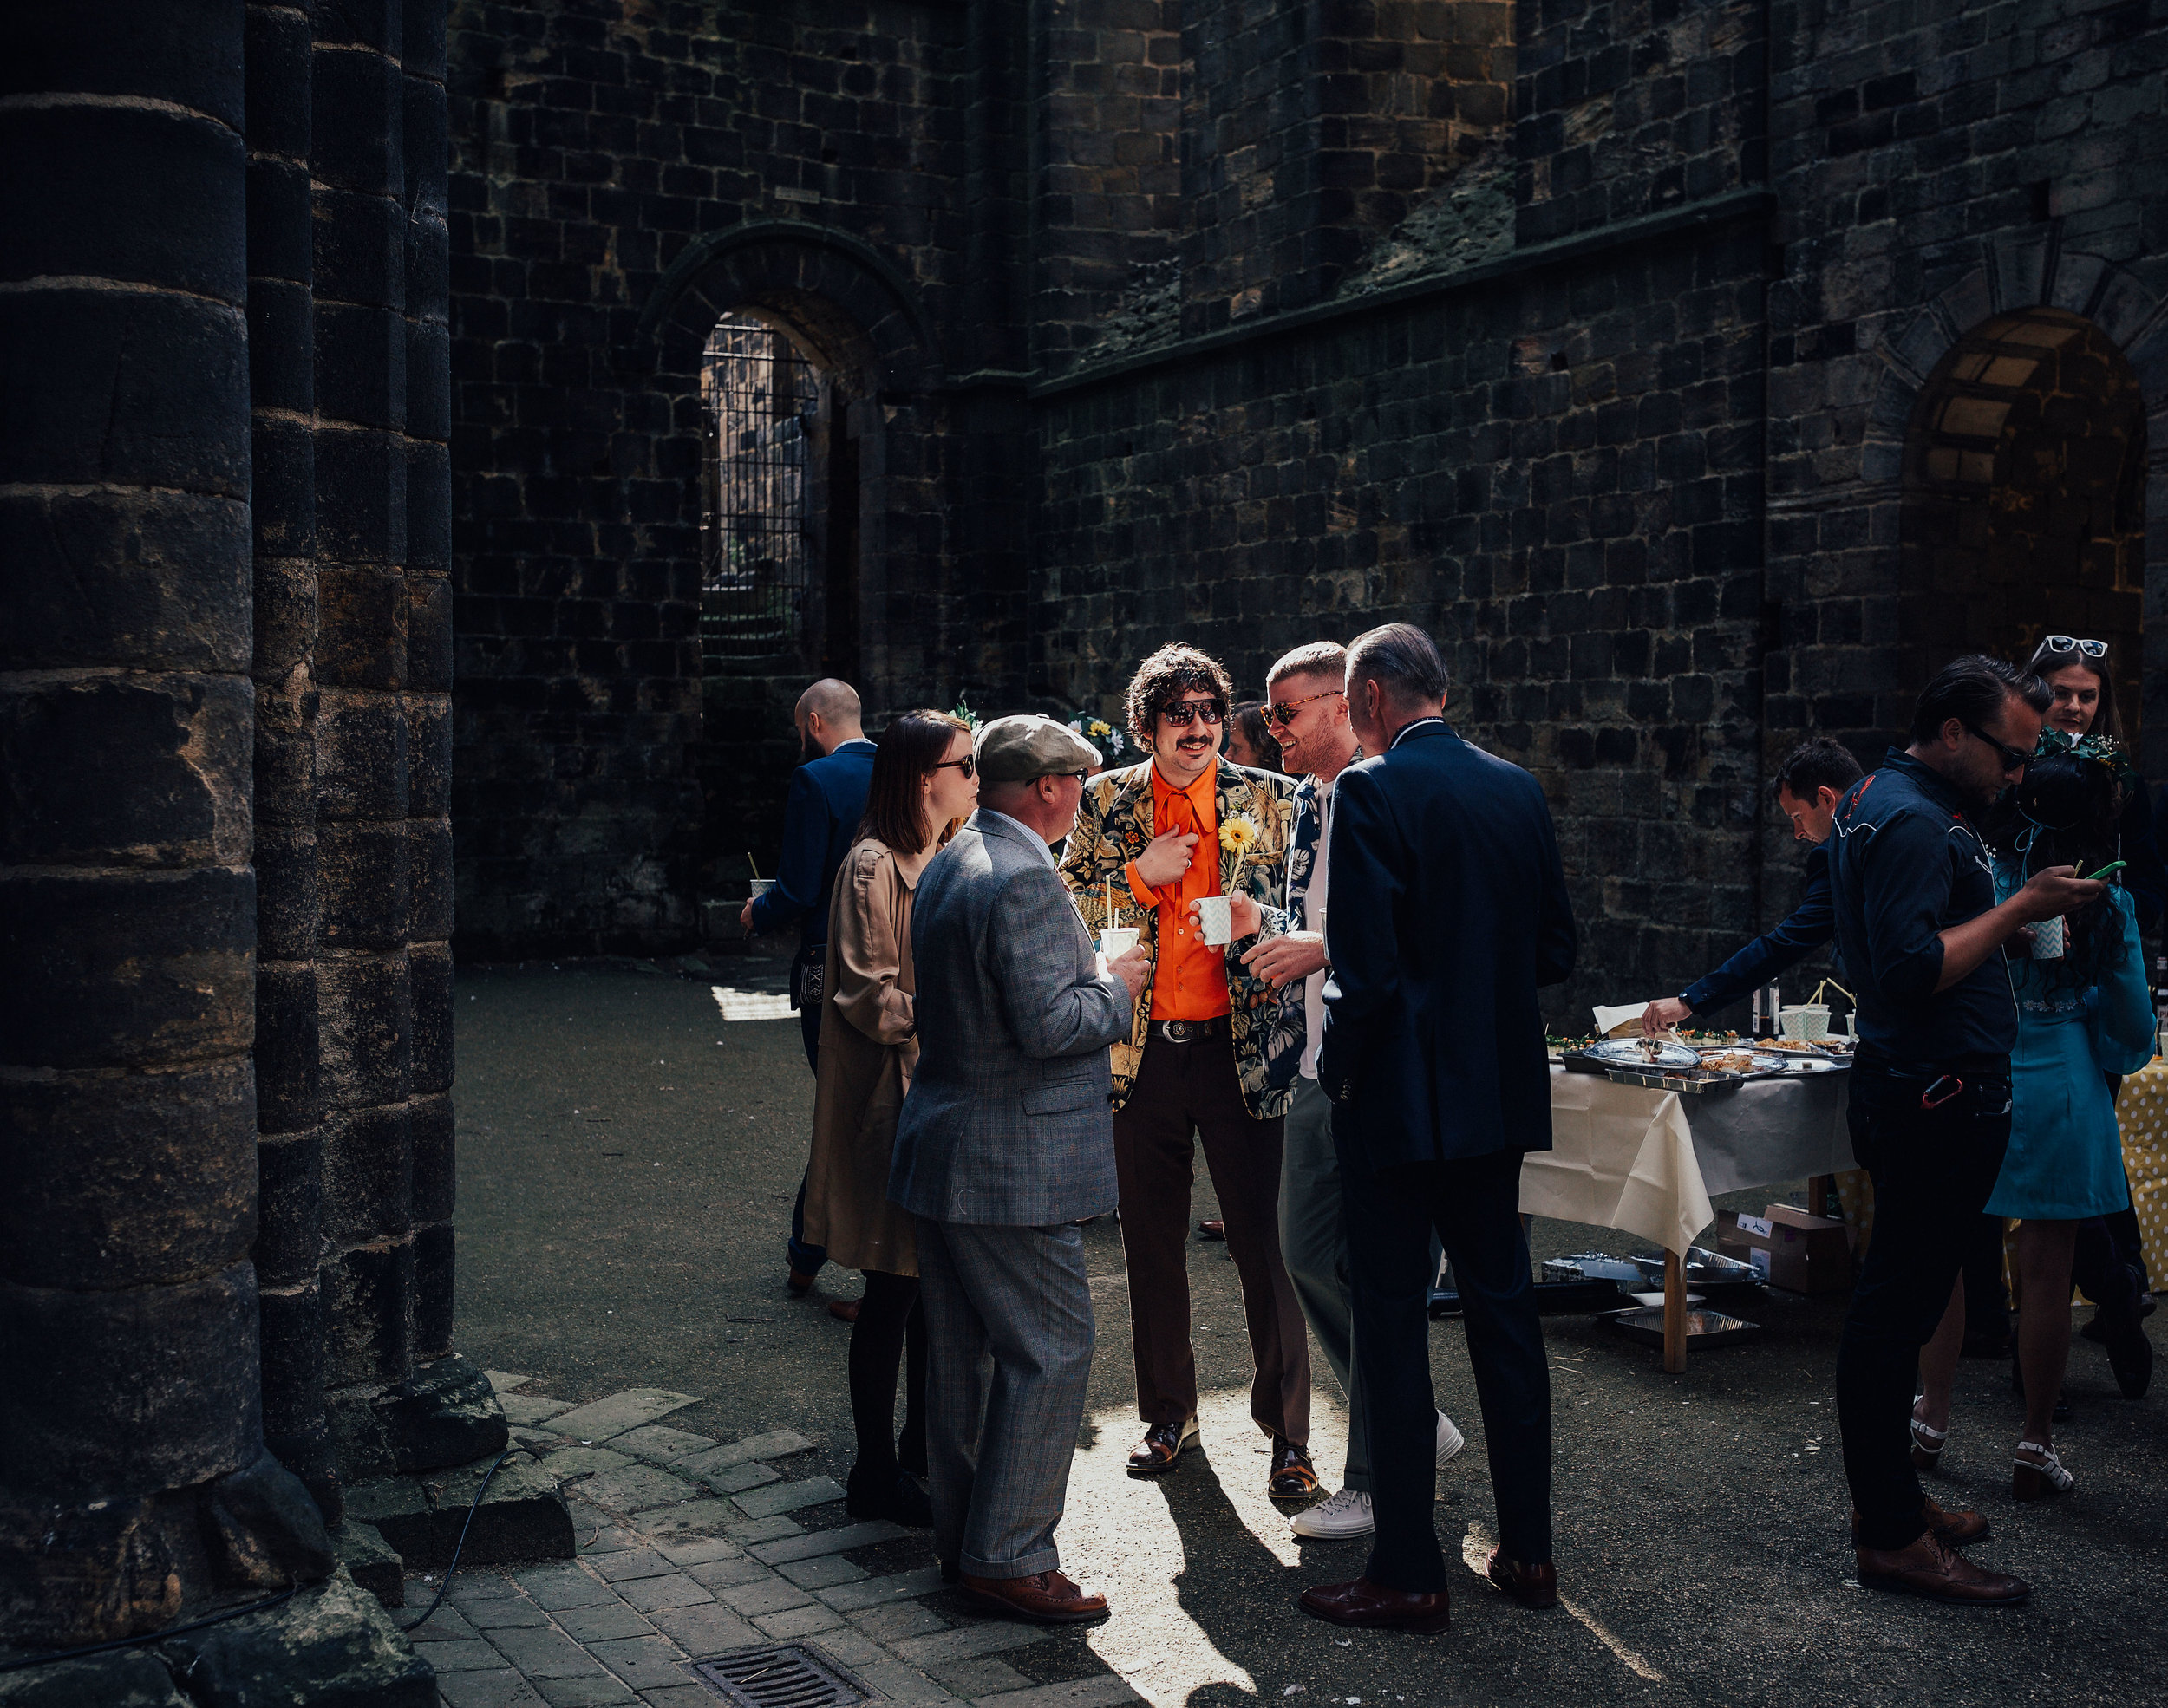 ALTERNATIVE_WEDDING_PHOTOGRAPHY_LEEDS_UK_PJ_PHILLIPS_PHOTOGRAPHY_87.jpg